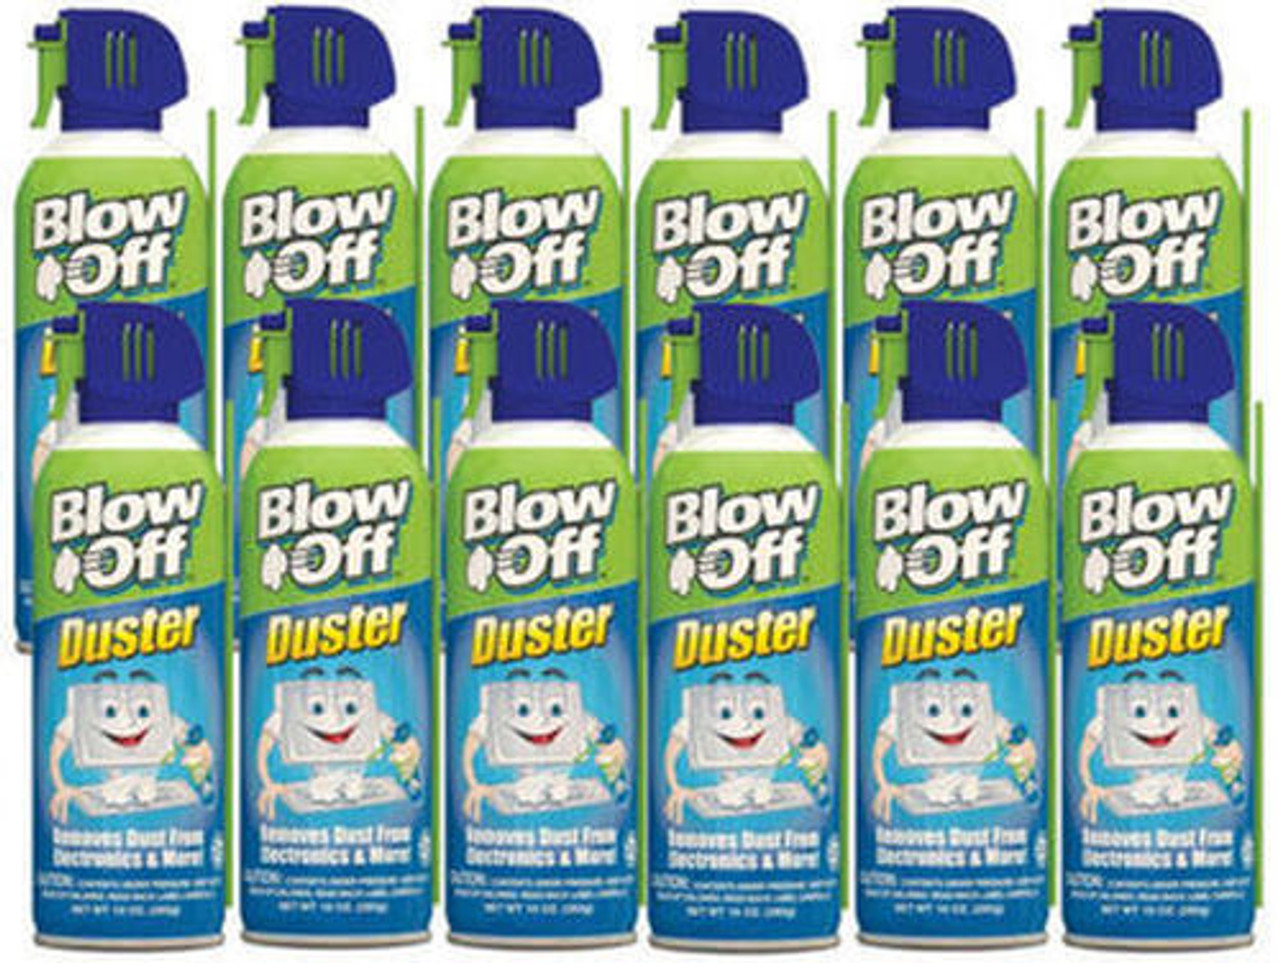 Max Pro Blow Off 152-112-226 Canned Air Duster - 36 Cans